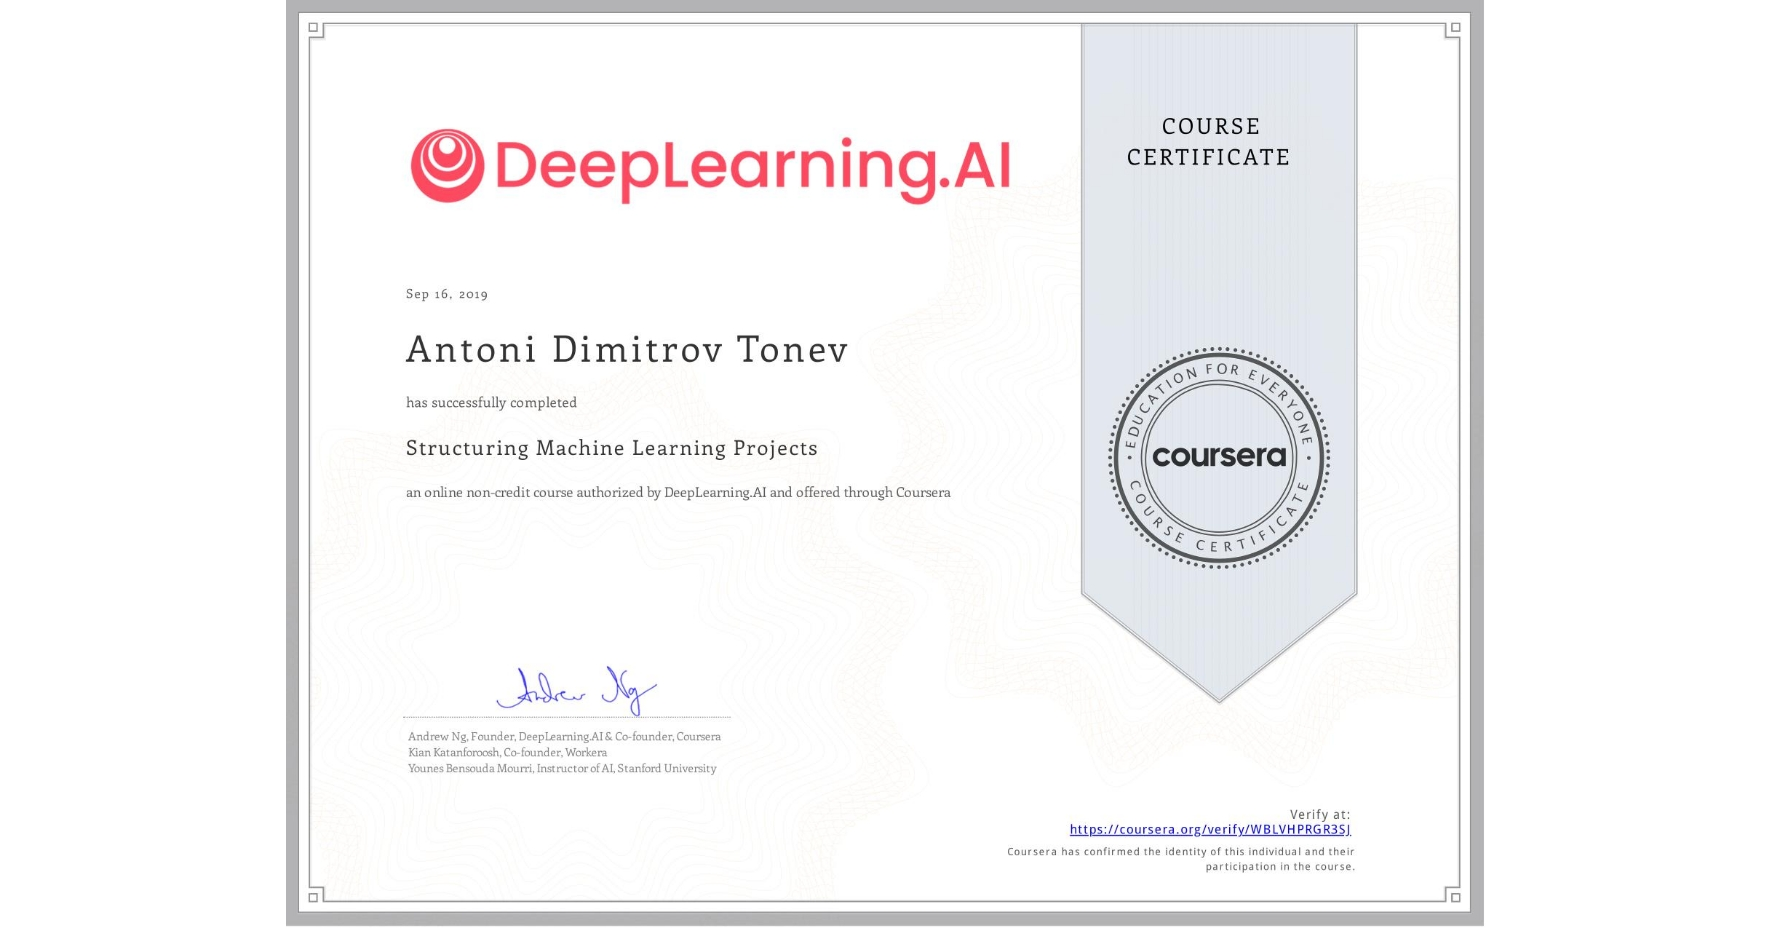 View certificate for Antoni Dimitrov Tonev, Structuring Machine Learning Projects, an online non-credit course authorized by DeepLearning.AI and offered through Coursera